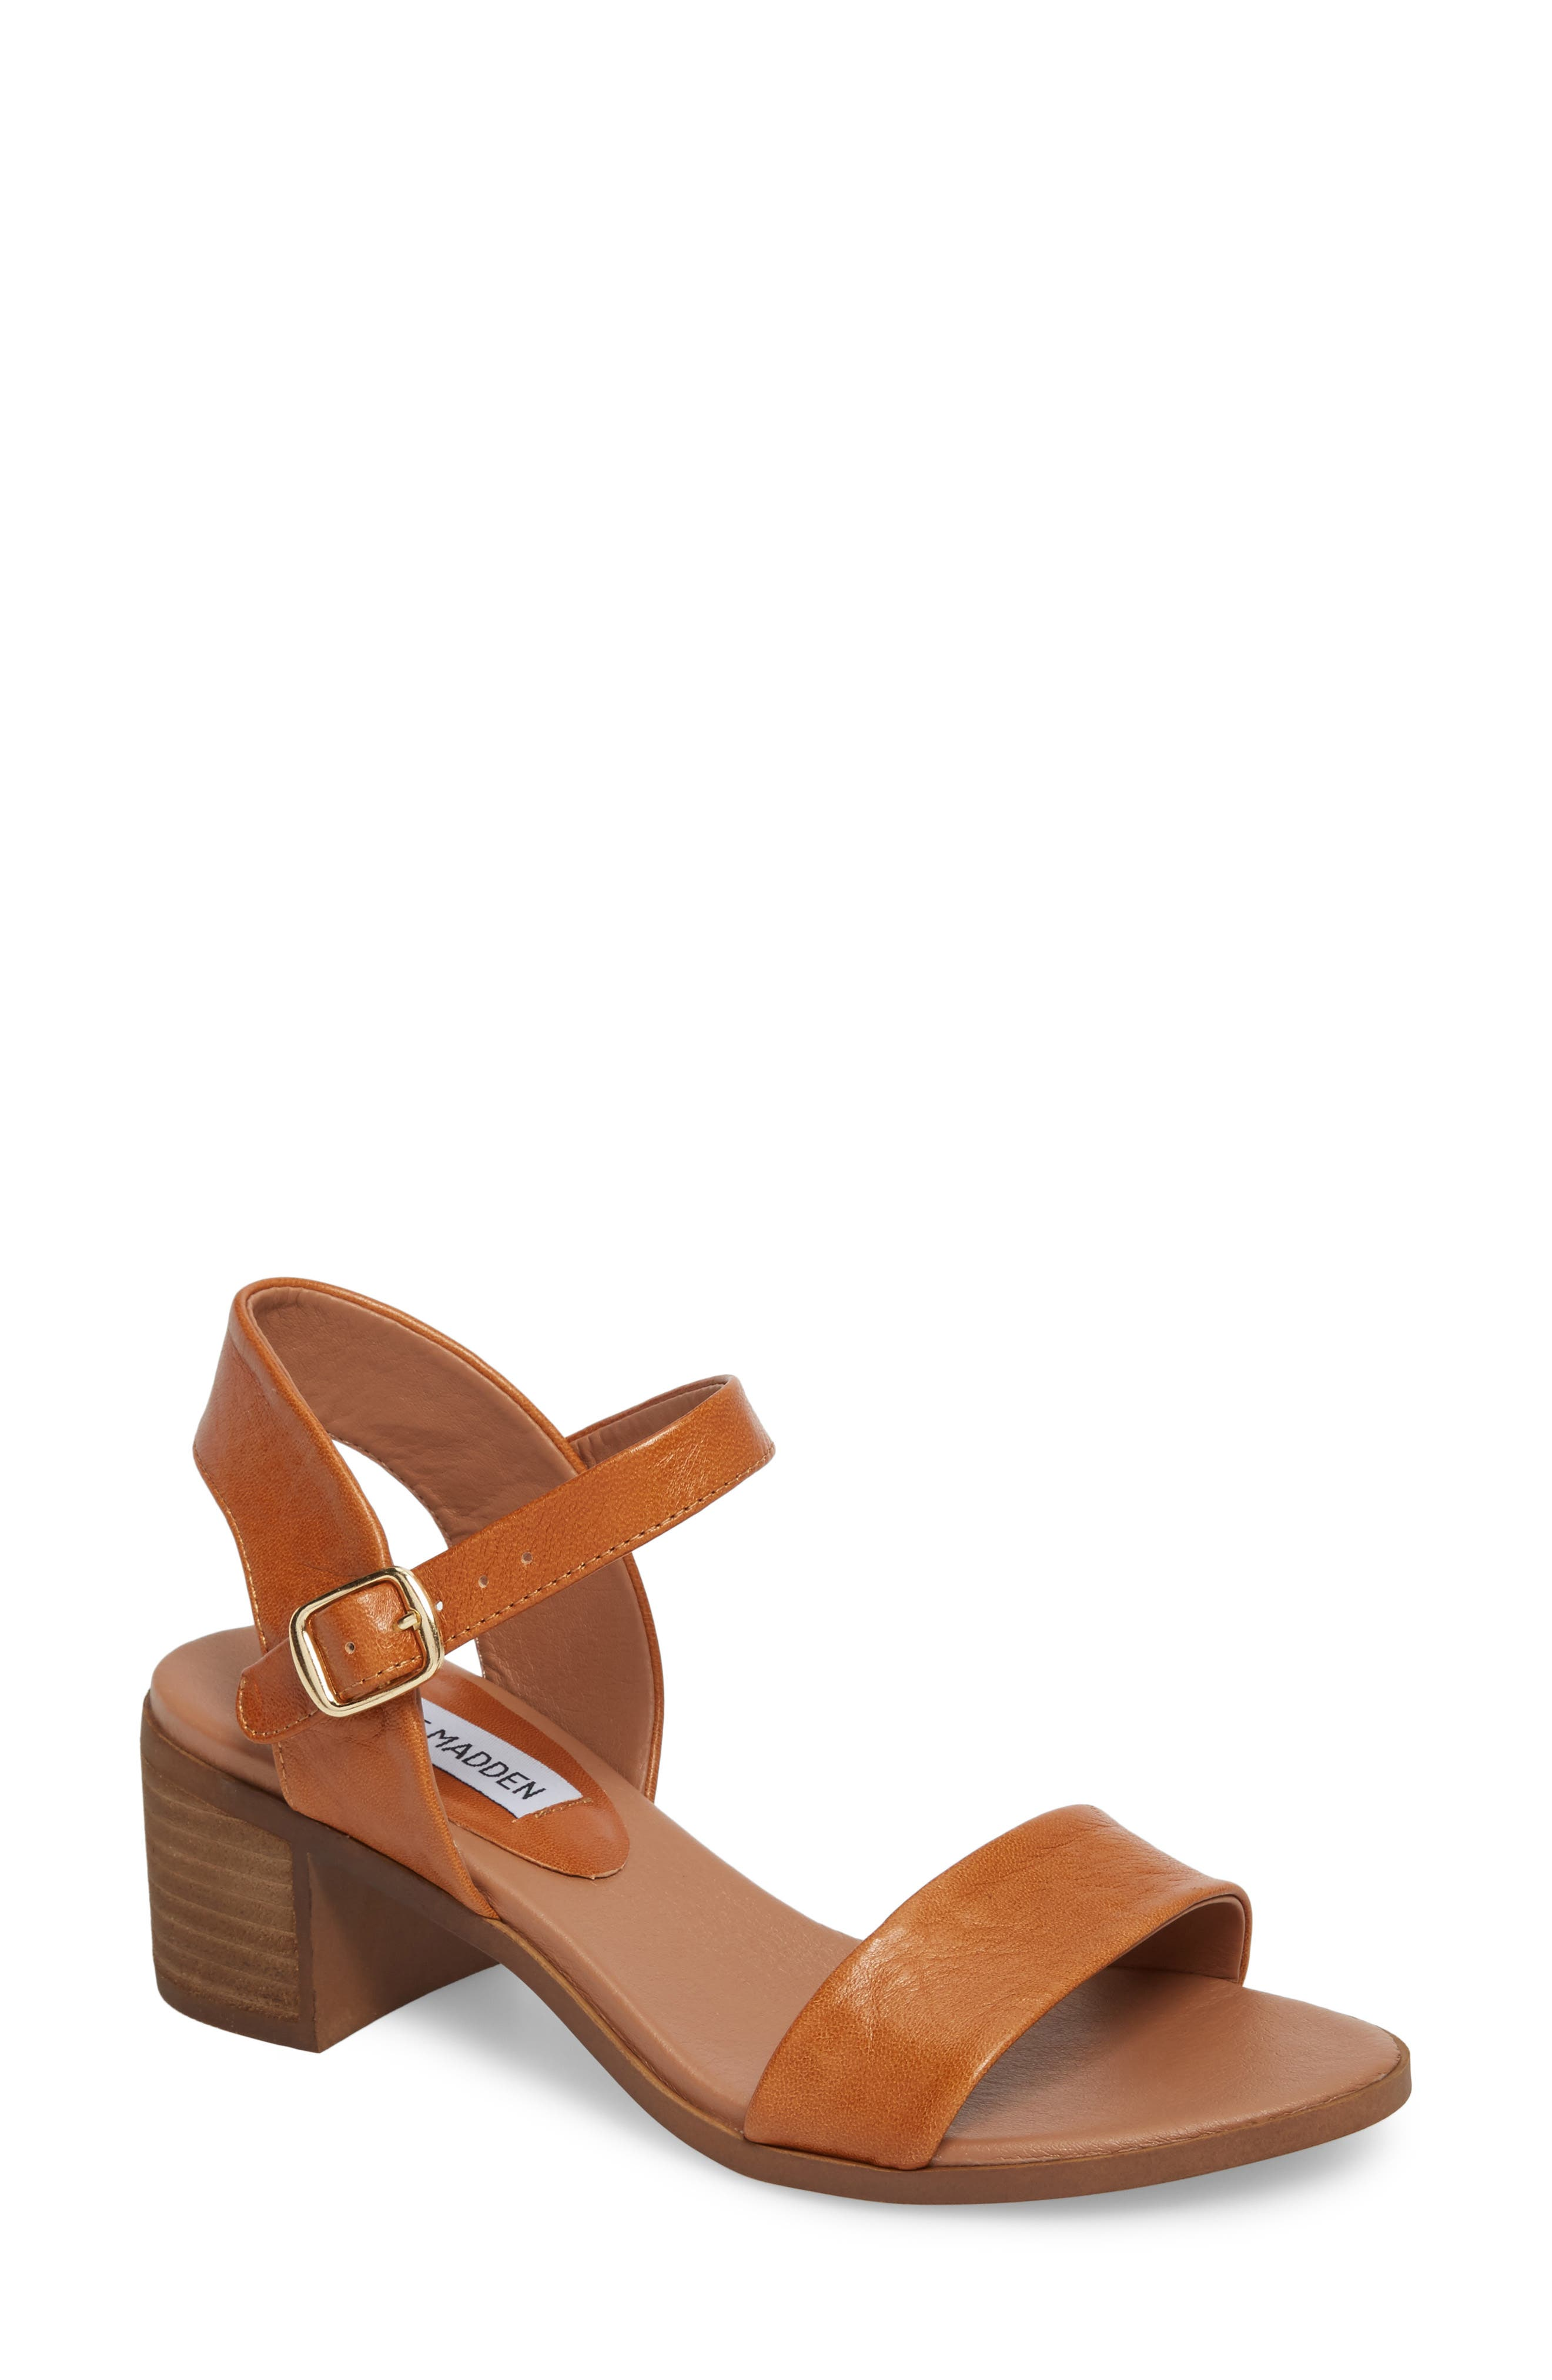 Main Image - Steve Madden April Block Heel Sandal (Women)